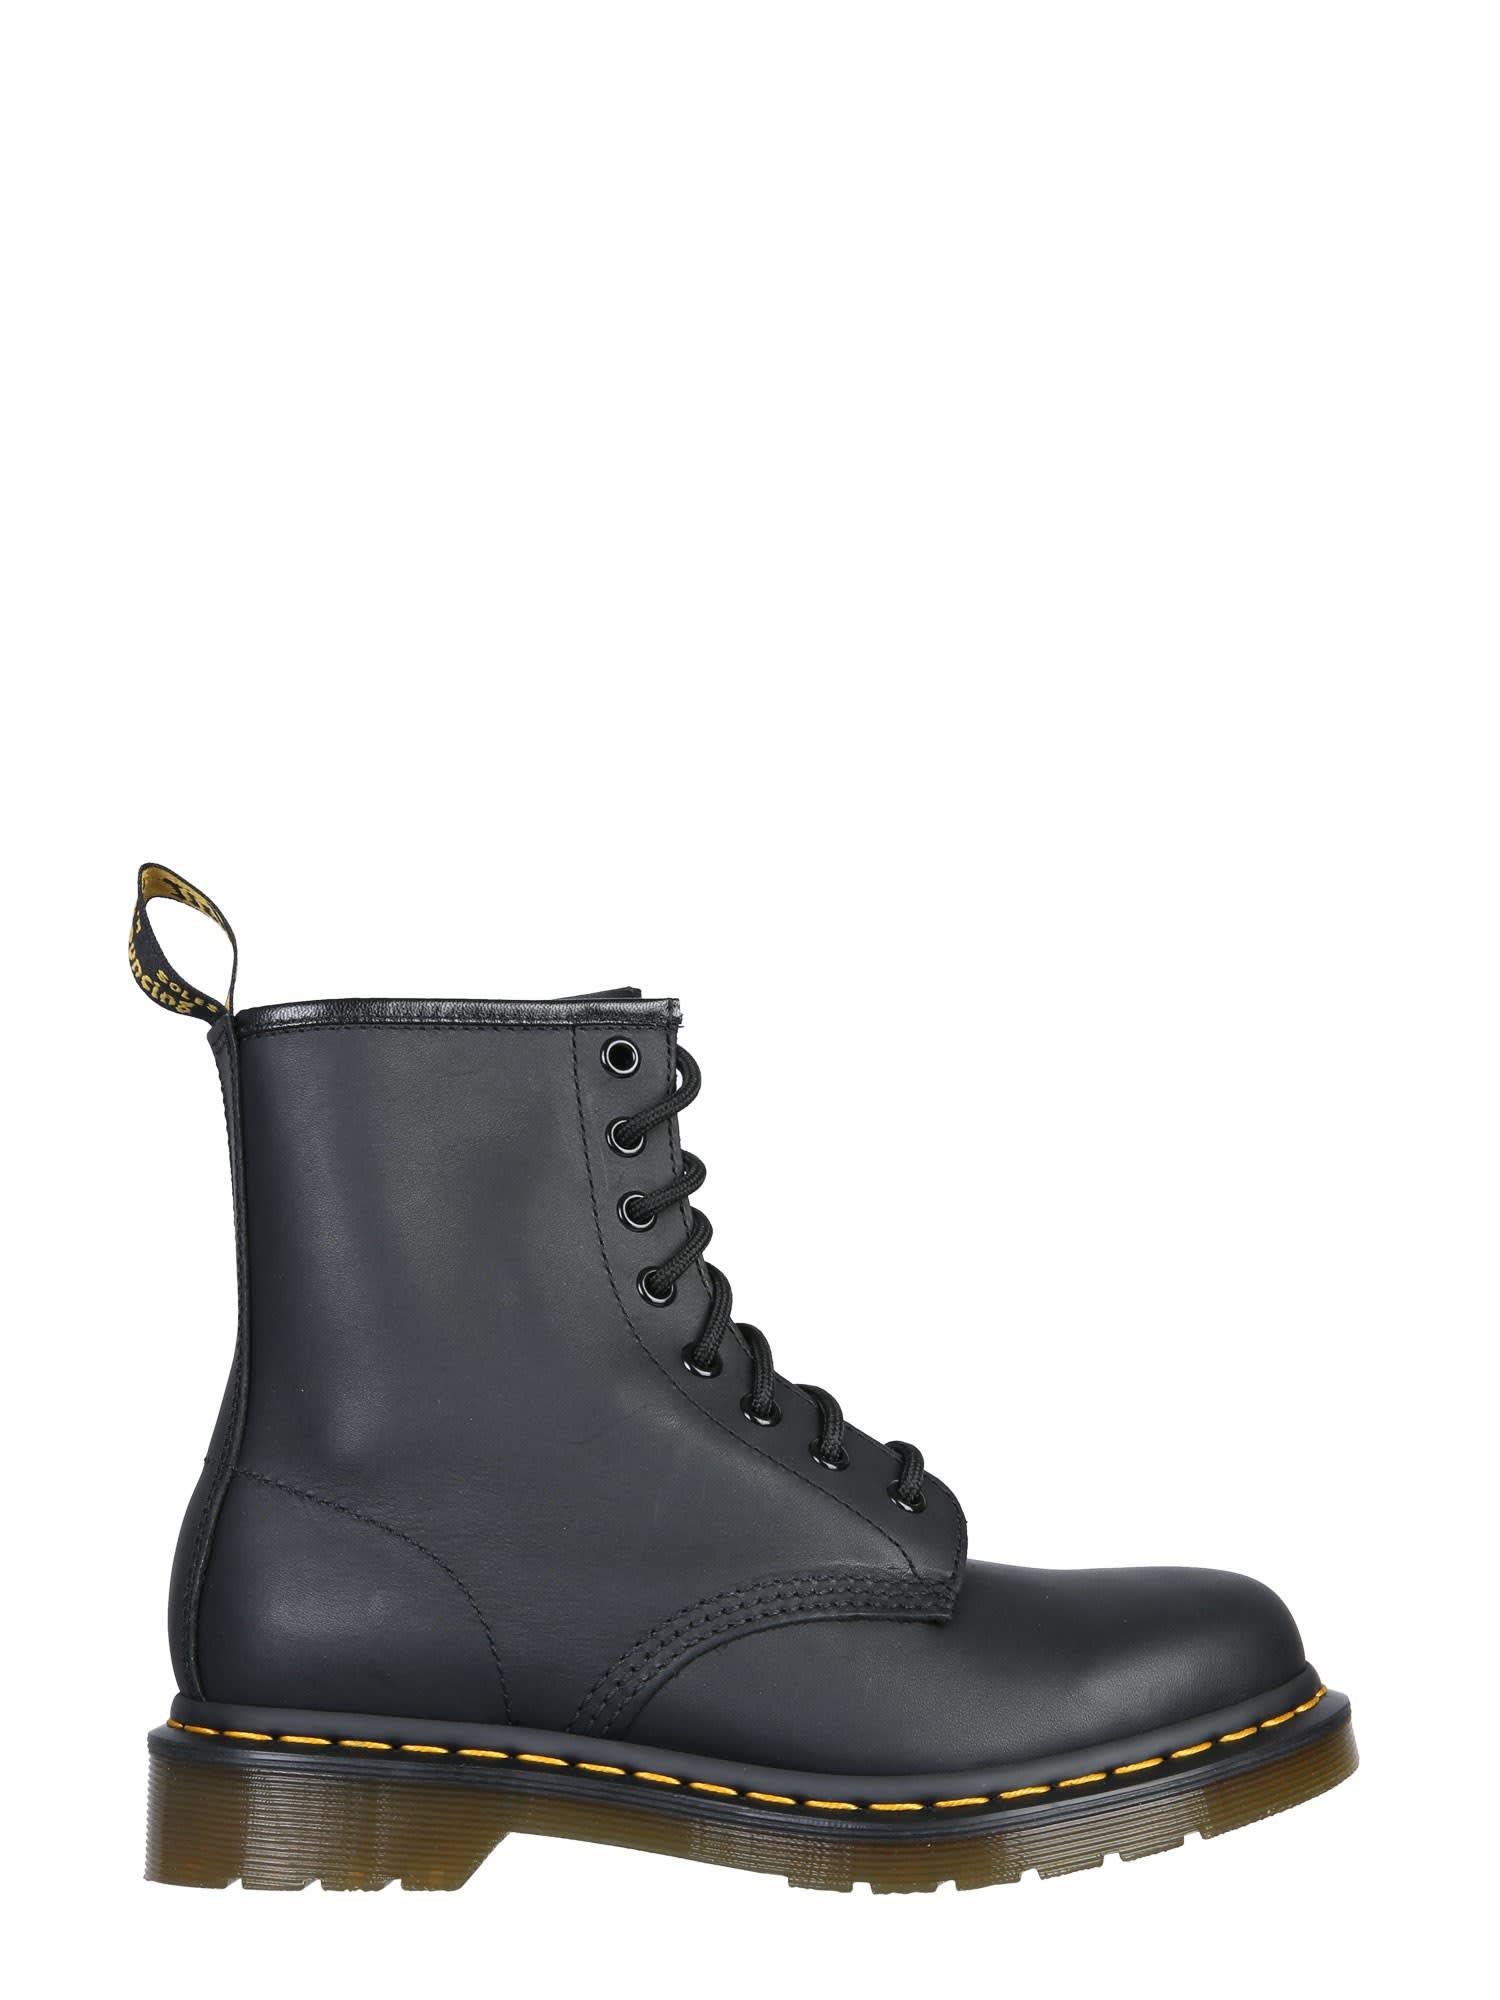 Dr. Martens GREASY CLASSIC BOOTS